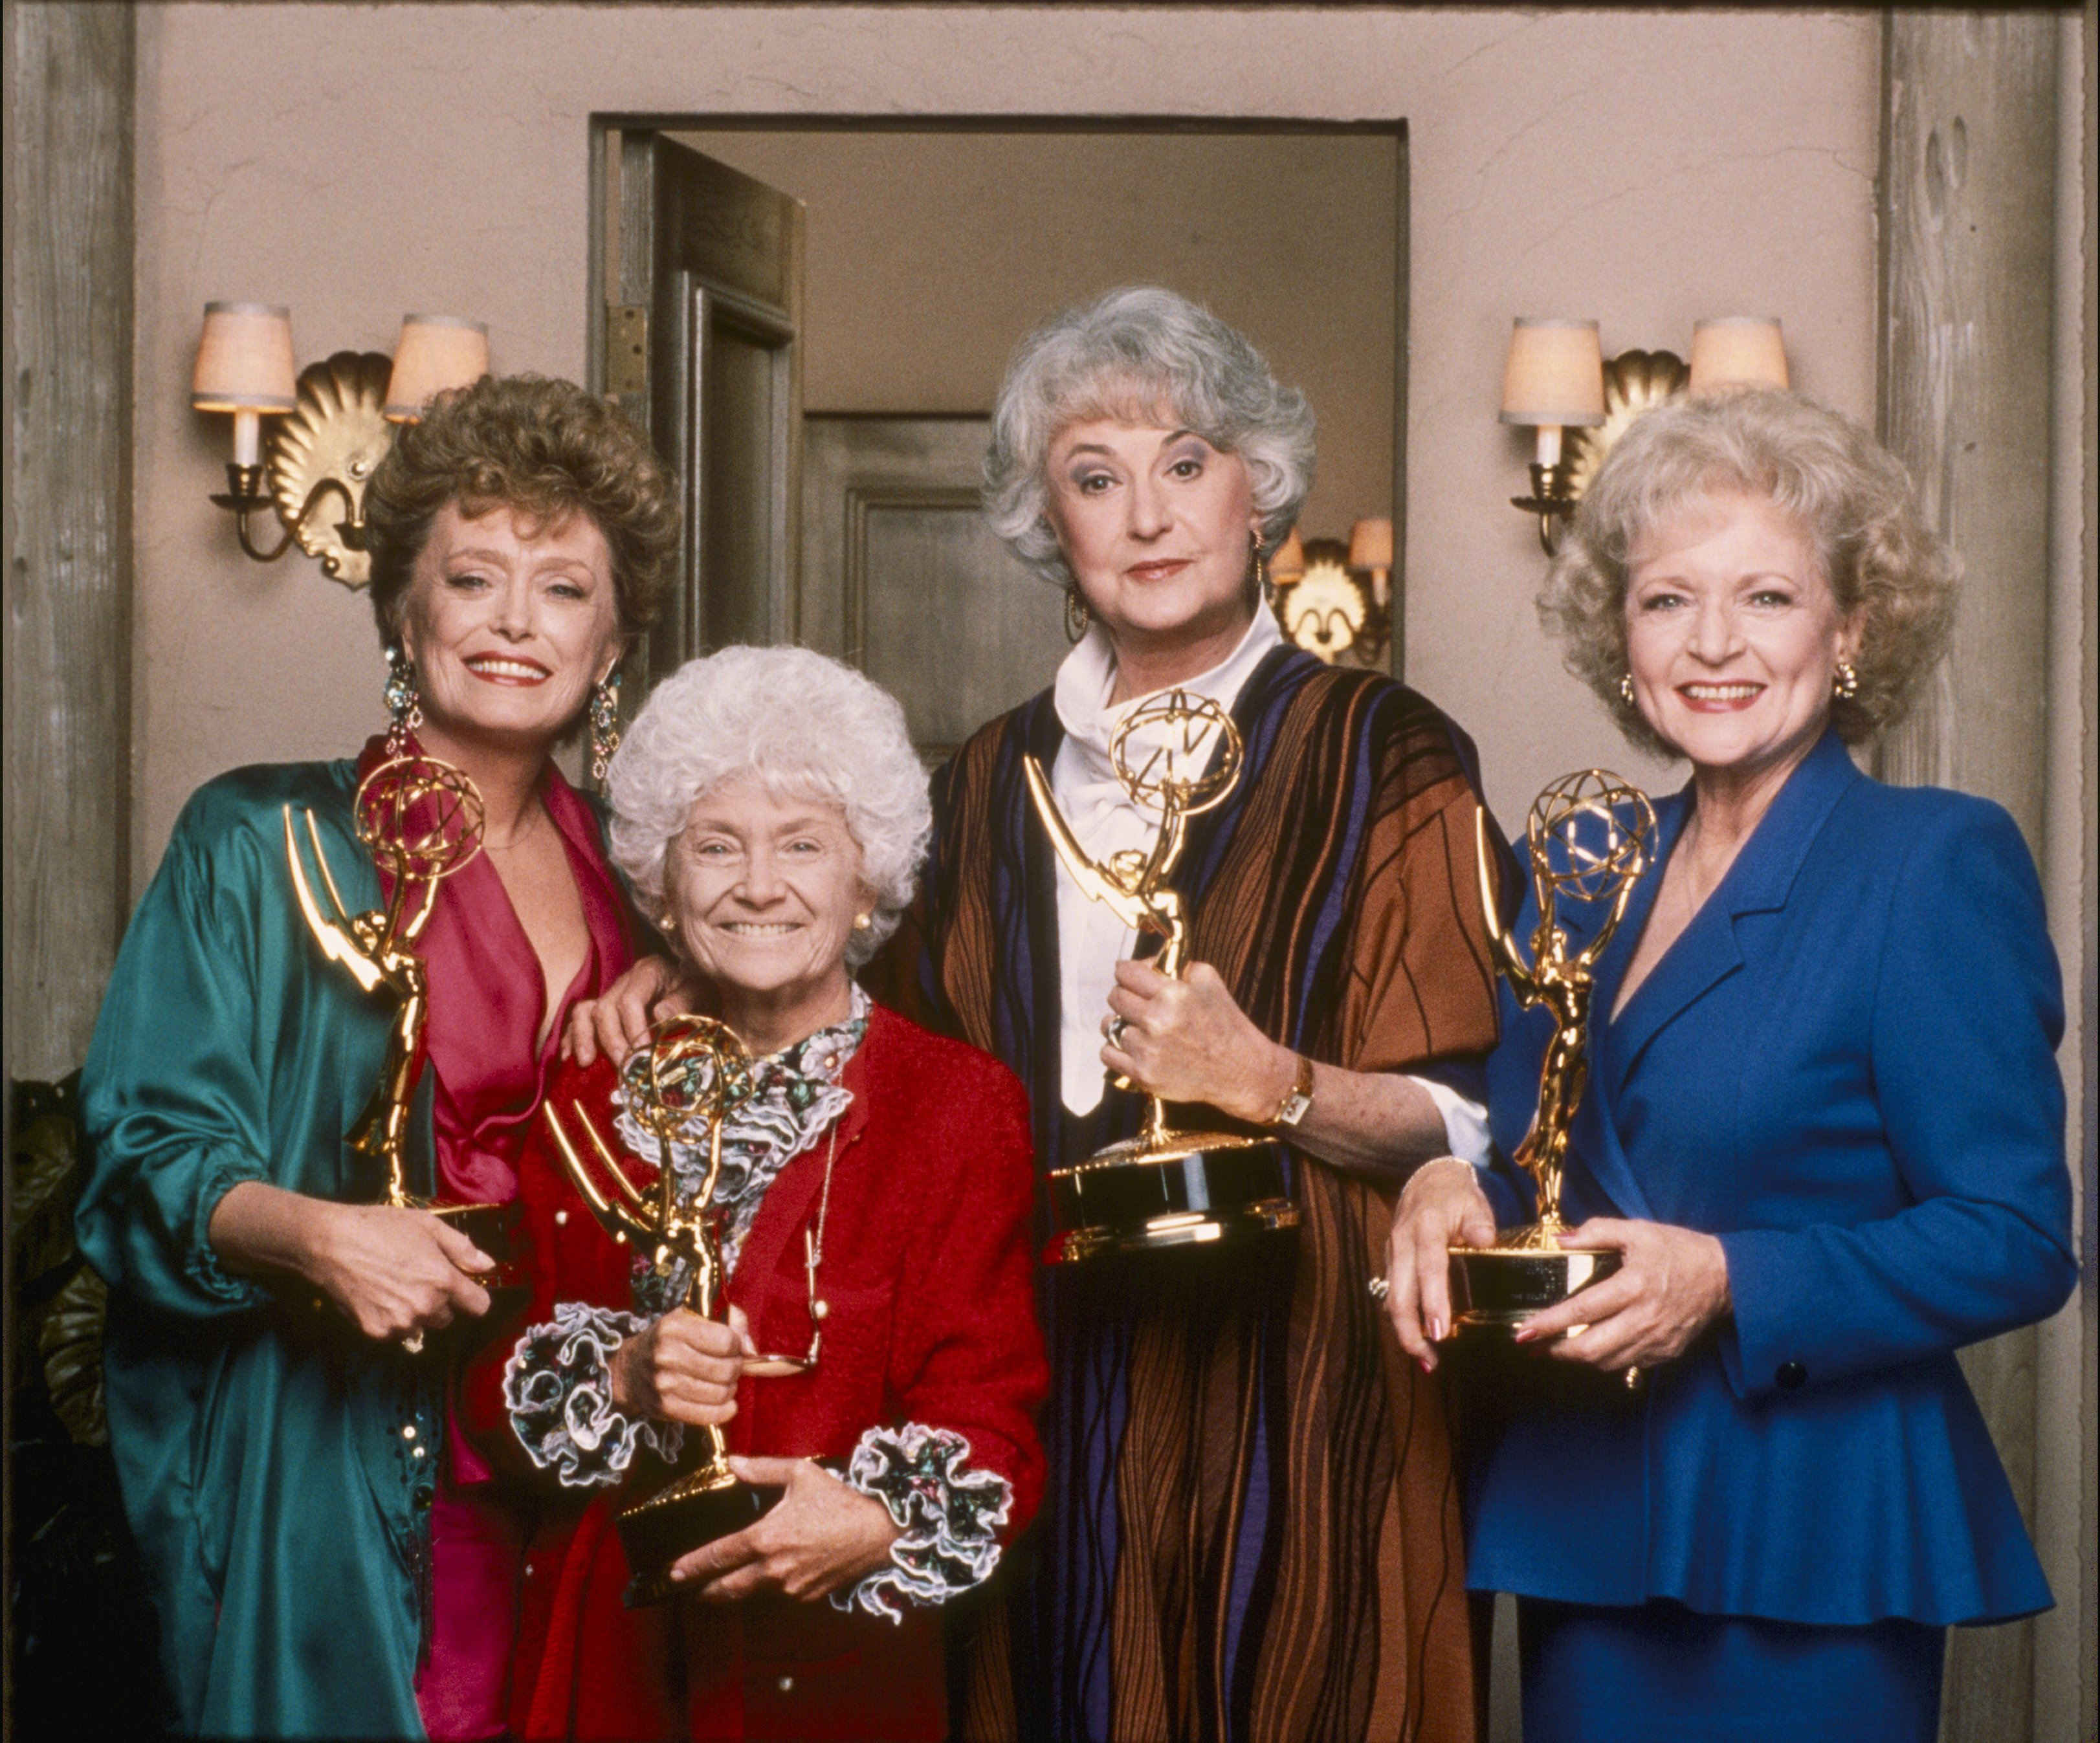 Rue McClanahan, Estelle Getty, Bea Arthur, and  Betty White with their Emmys for Outstanding Lead Actress in a Comedy Series | Source: Getty Images